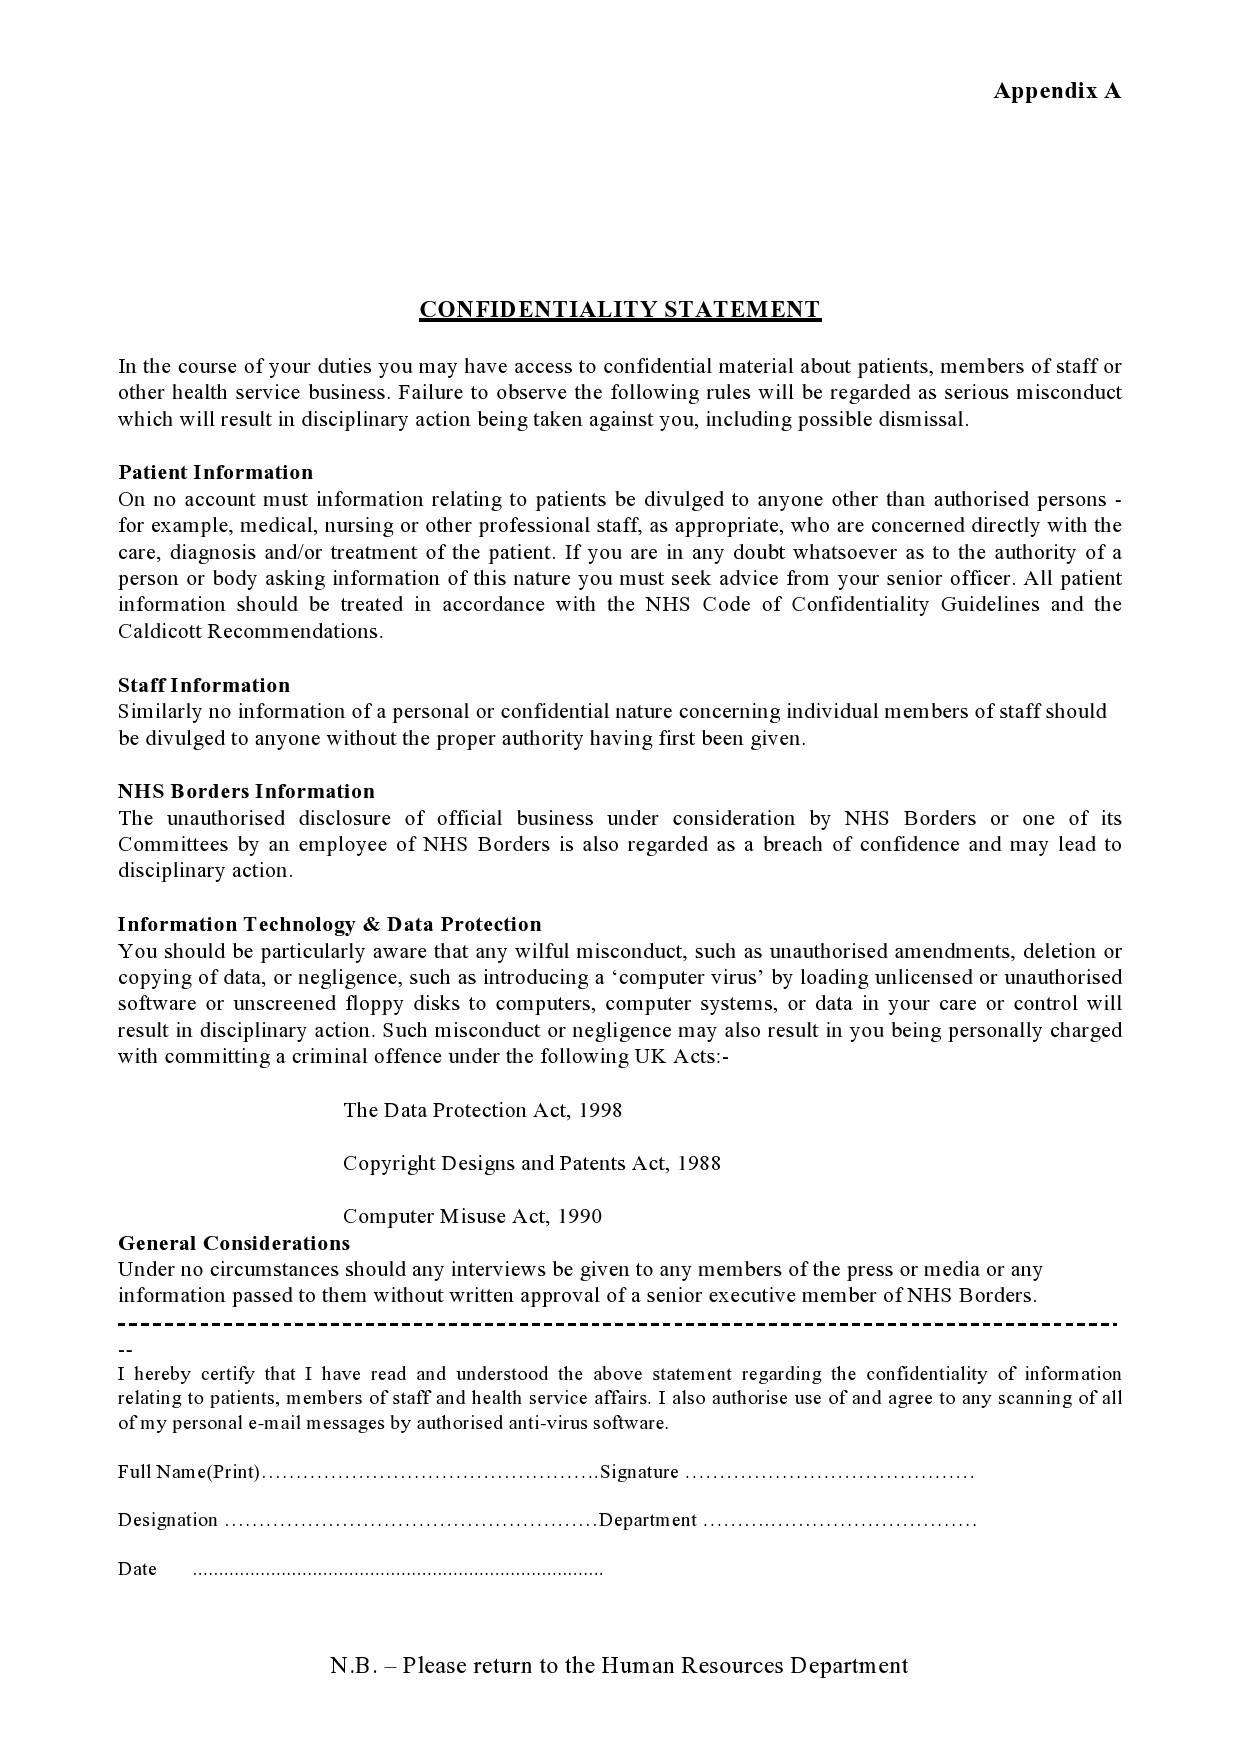 Free confidentiality statement 16